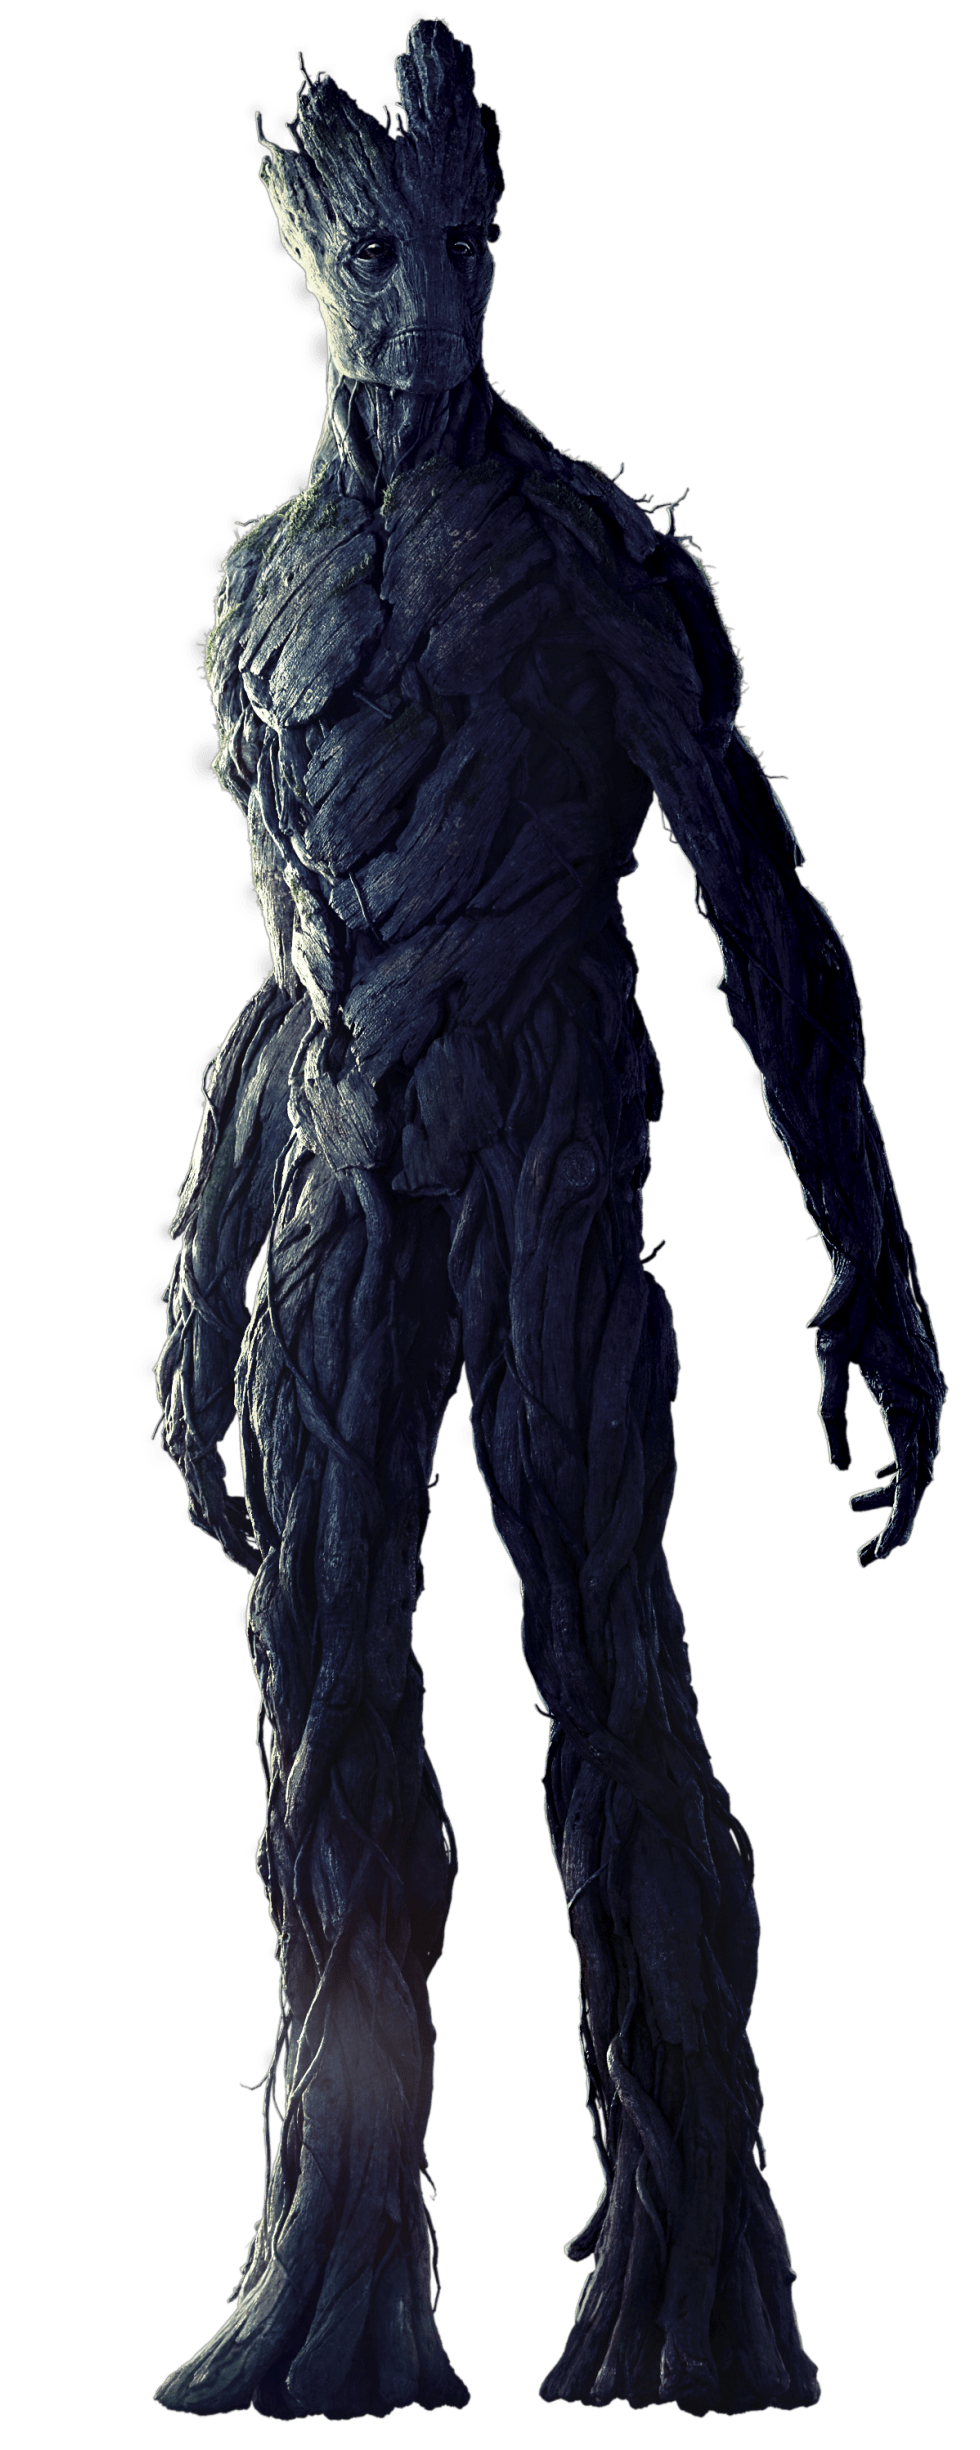 groot transparent red suit